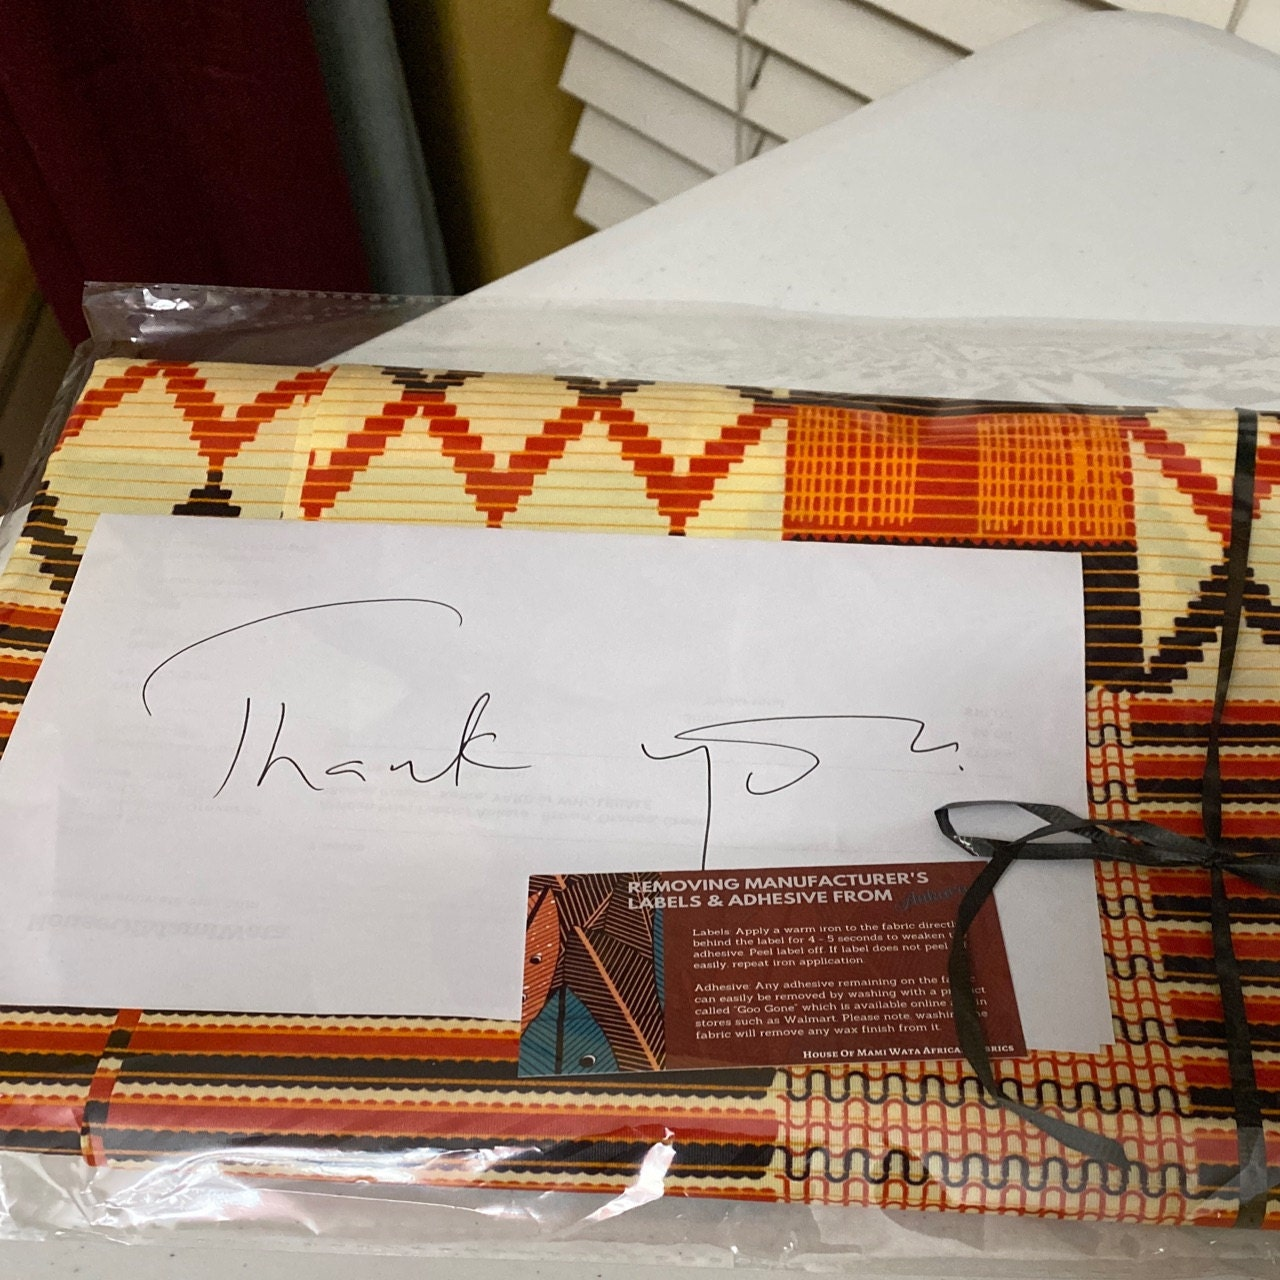 Dr. Cecelia Yopp added a photo of their purchase